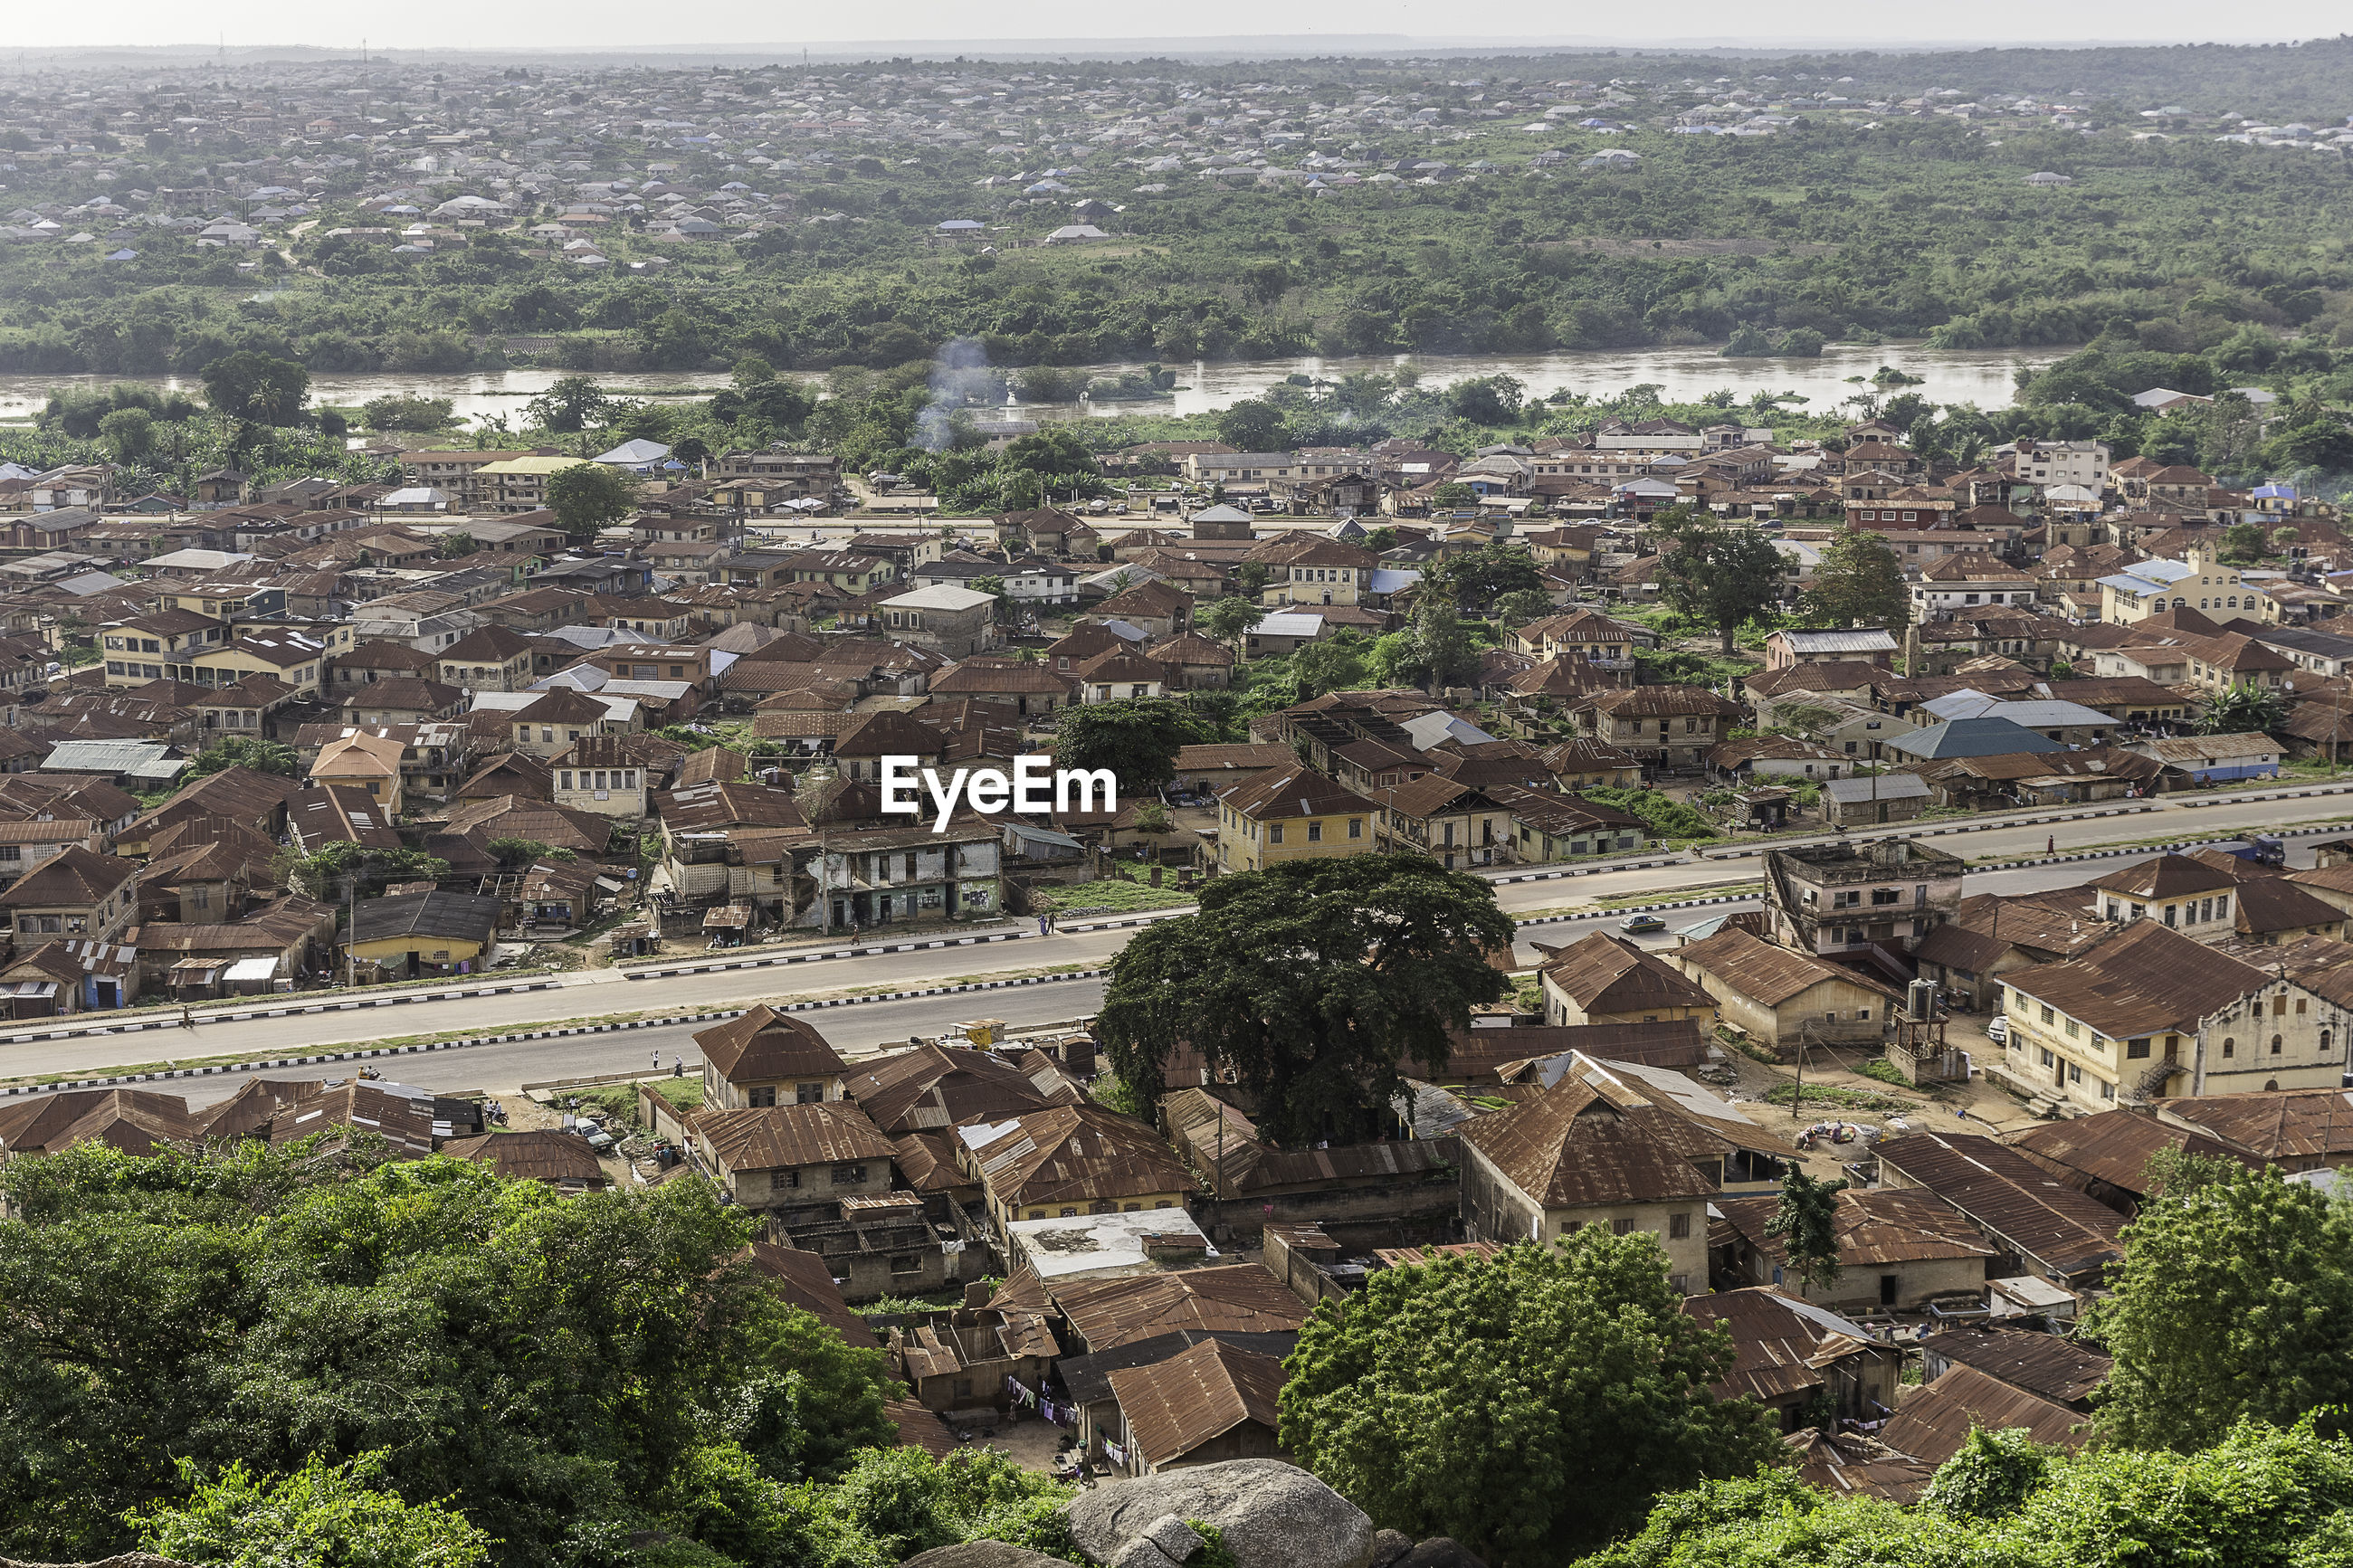 Olumo rock, located in the ancient town of abeokuta, in south-western nigeria.